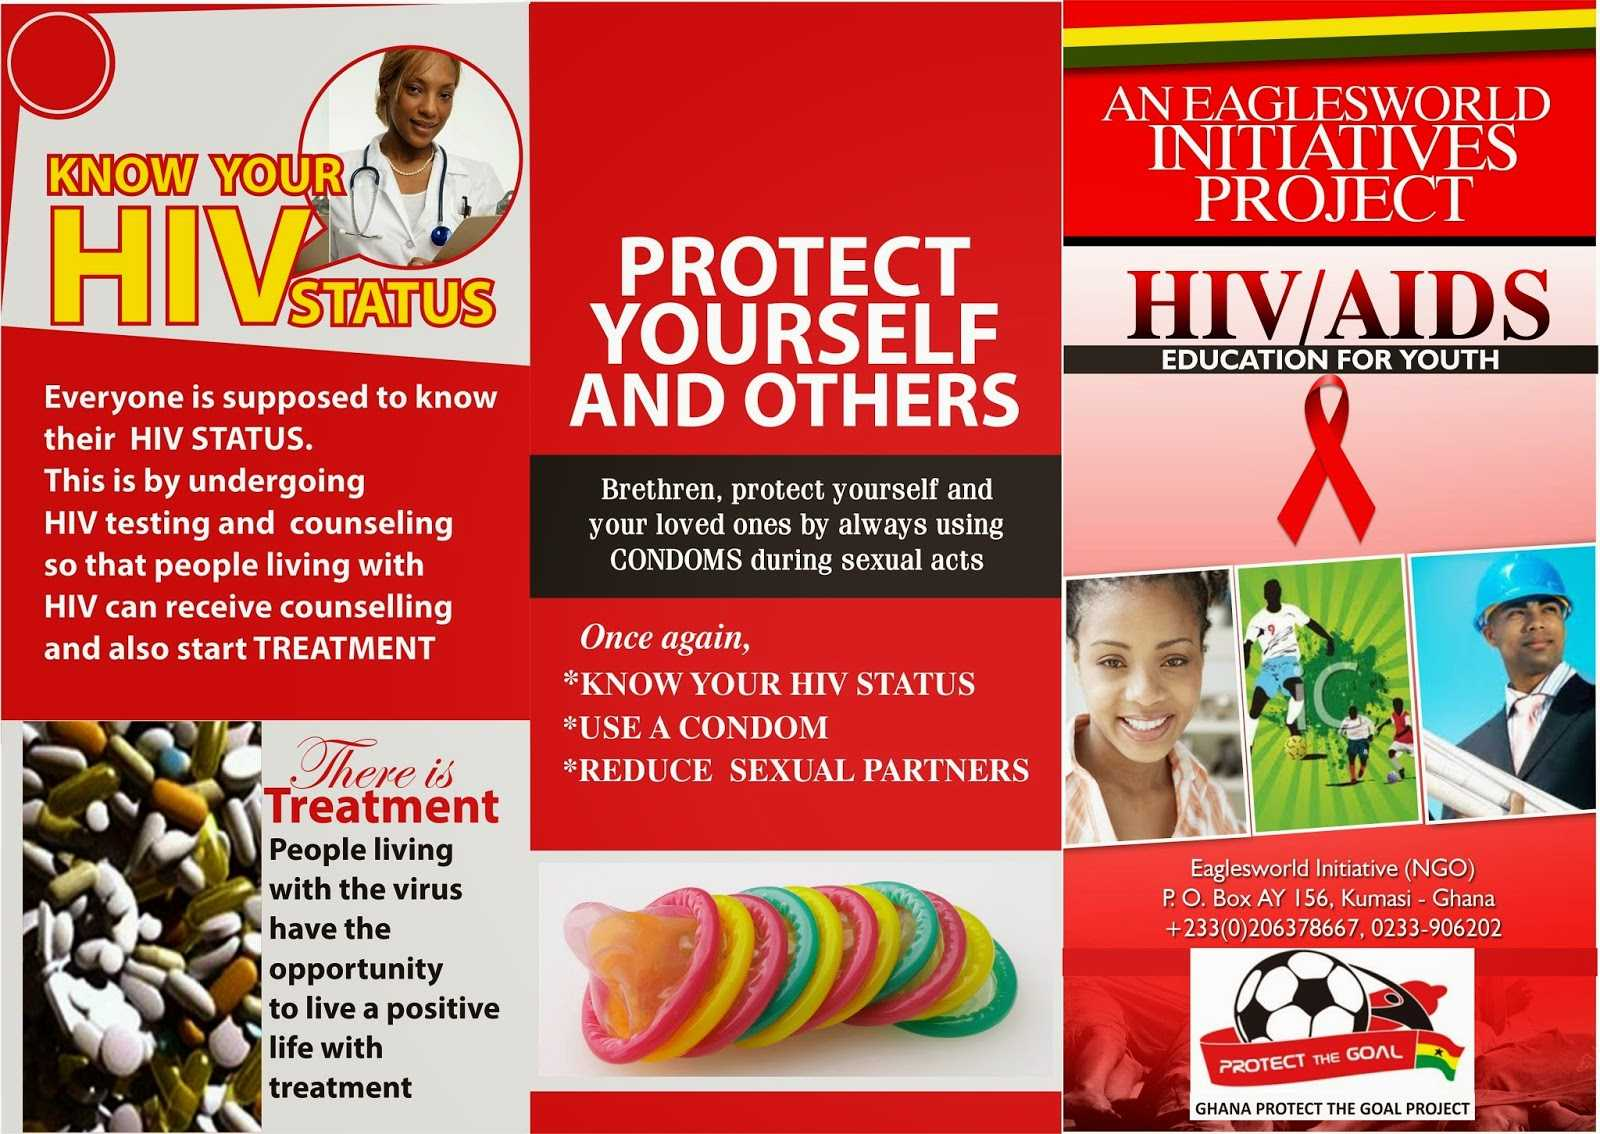 8 Best Photos Of Hiv Brochure Template - Hiv Aids Brochure For Hiv Aids Brochure Templates